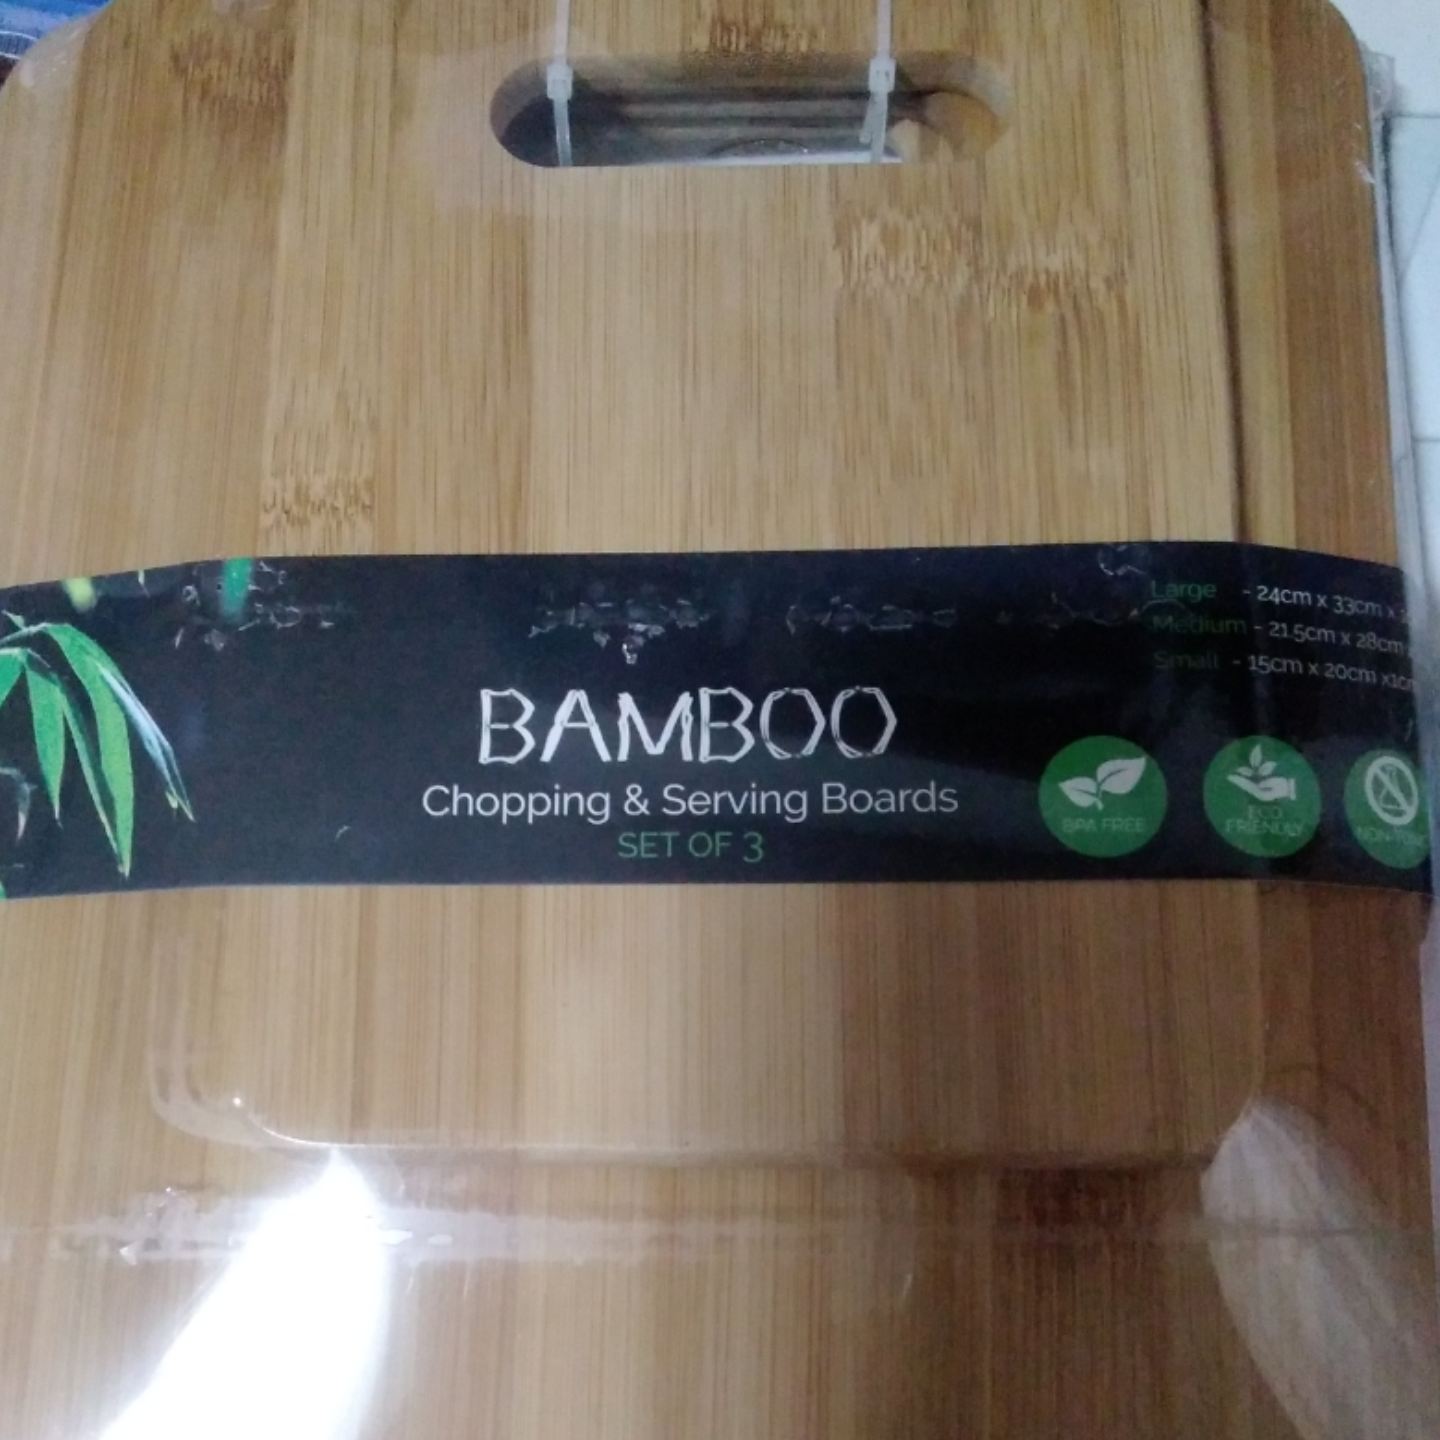 Bamboo Chopping and Serving Board (Set of 3)